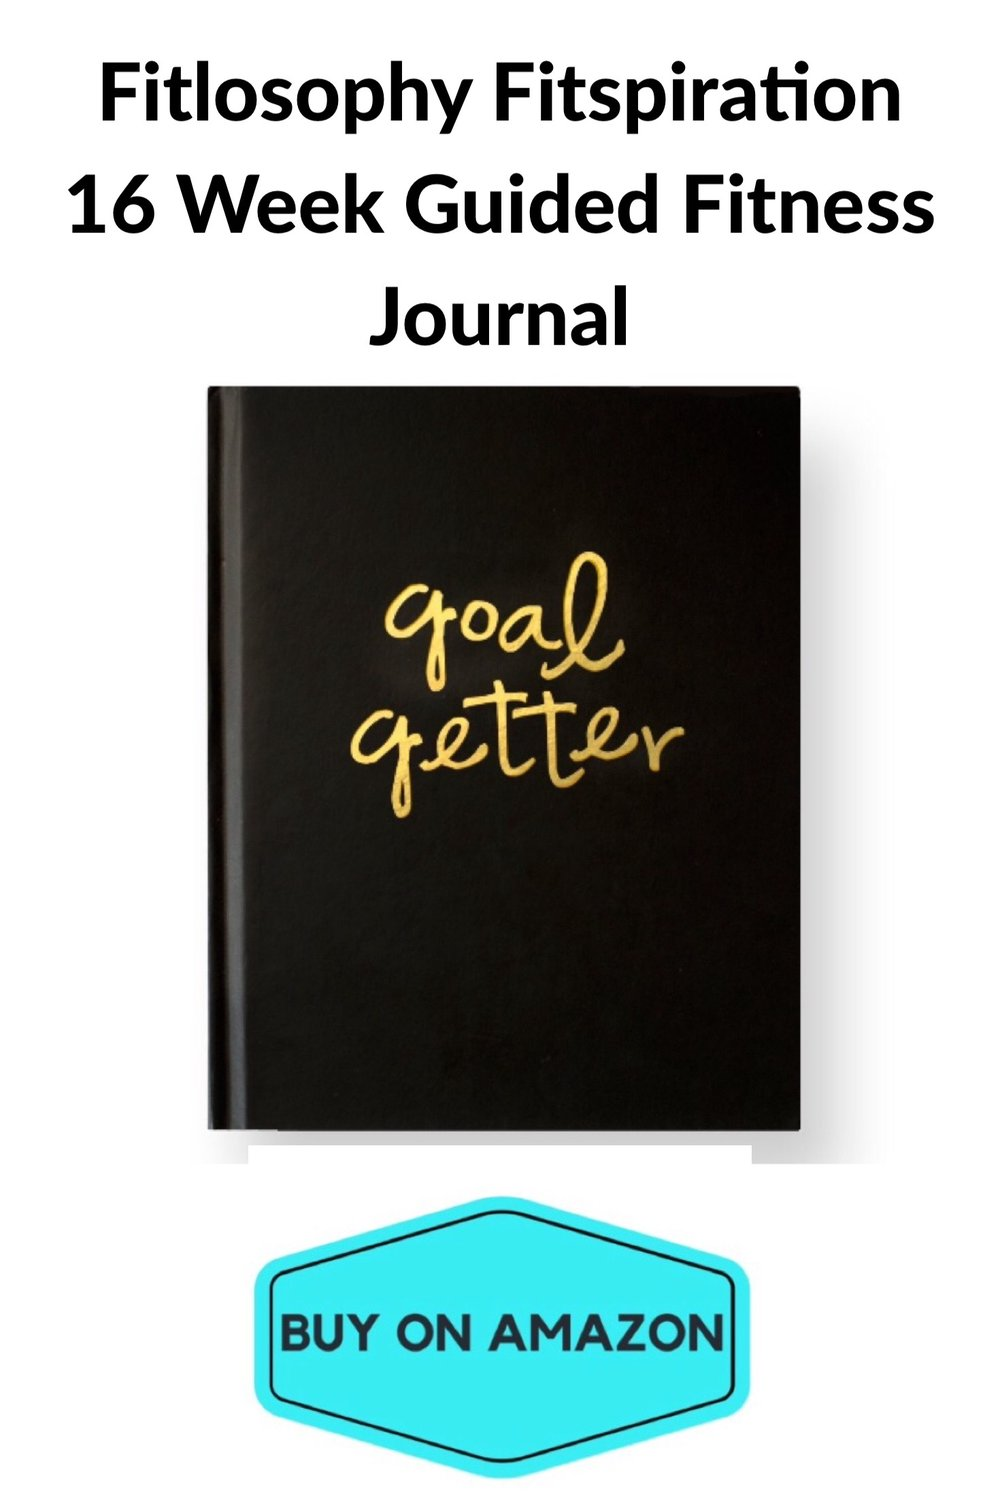 Fitlosophy Fitspiration 16 Week Guided Fitness Journal